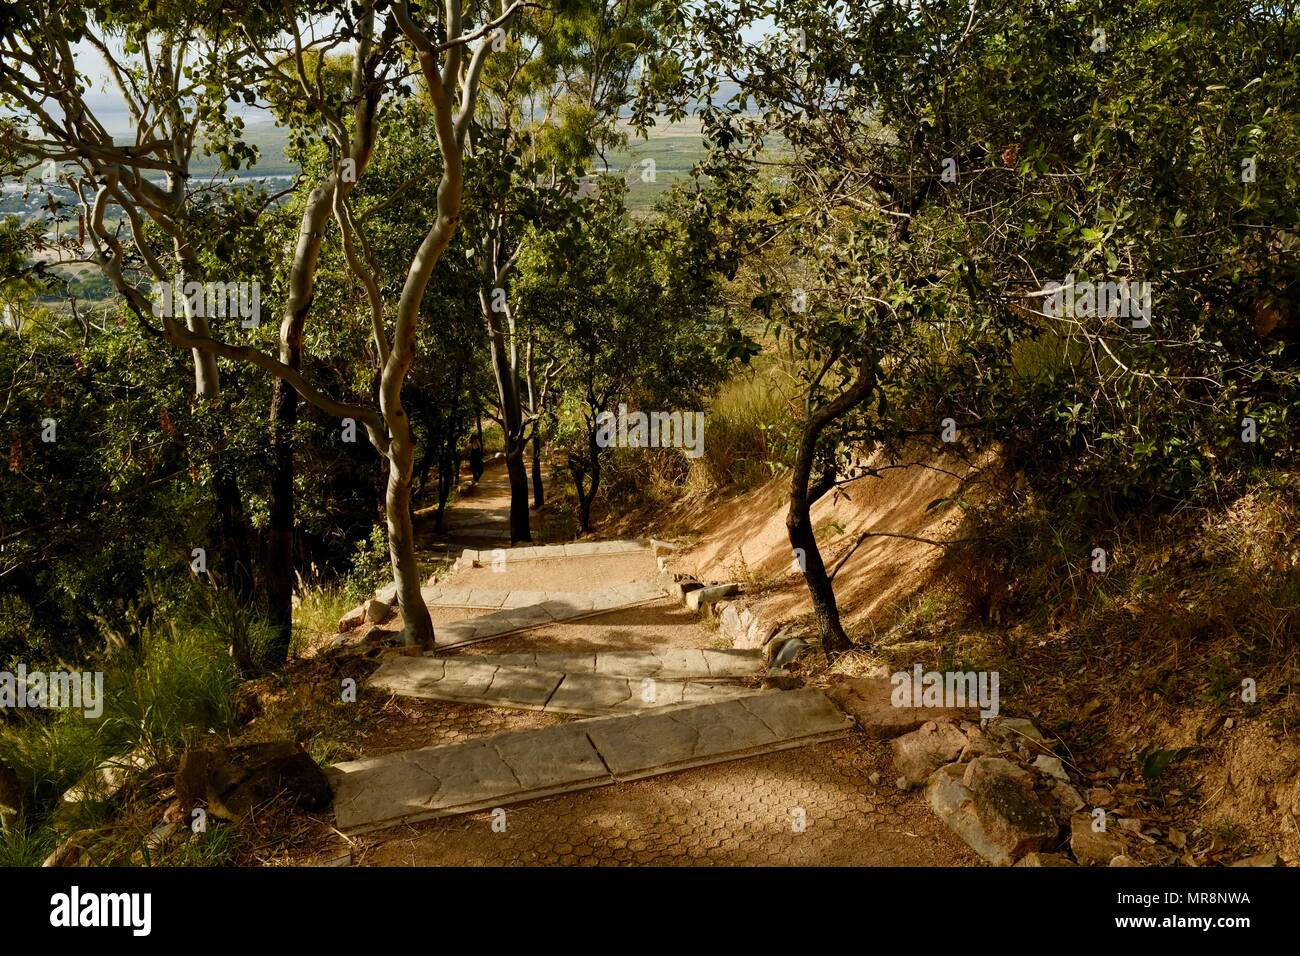 Flight of stairs through the Australian bush on Cudtheringa track, Castle Hill QLD 4810, Australia - Stock Image